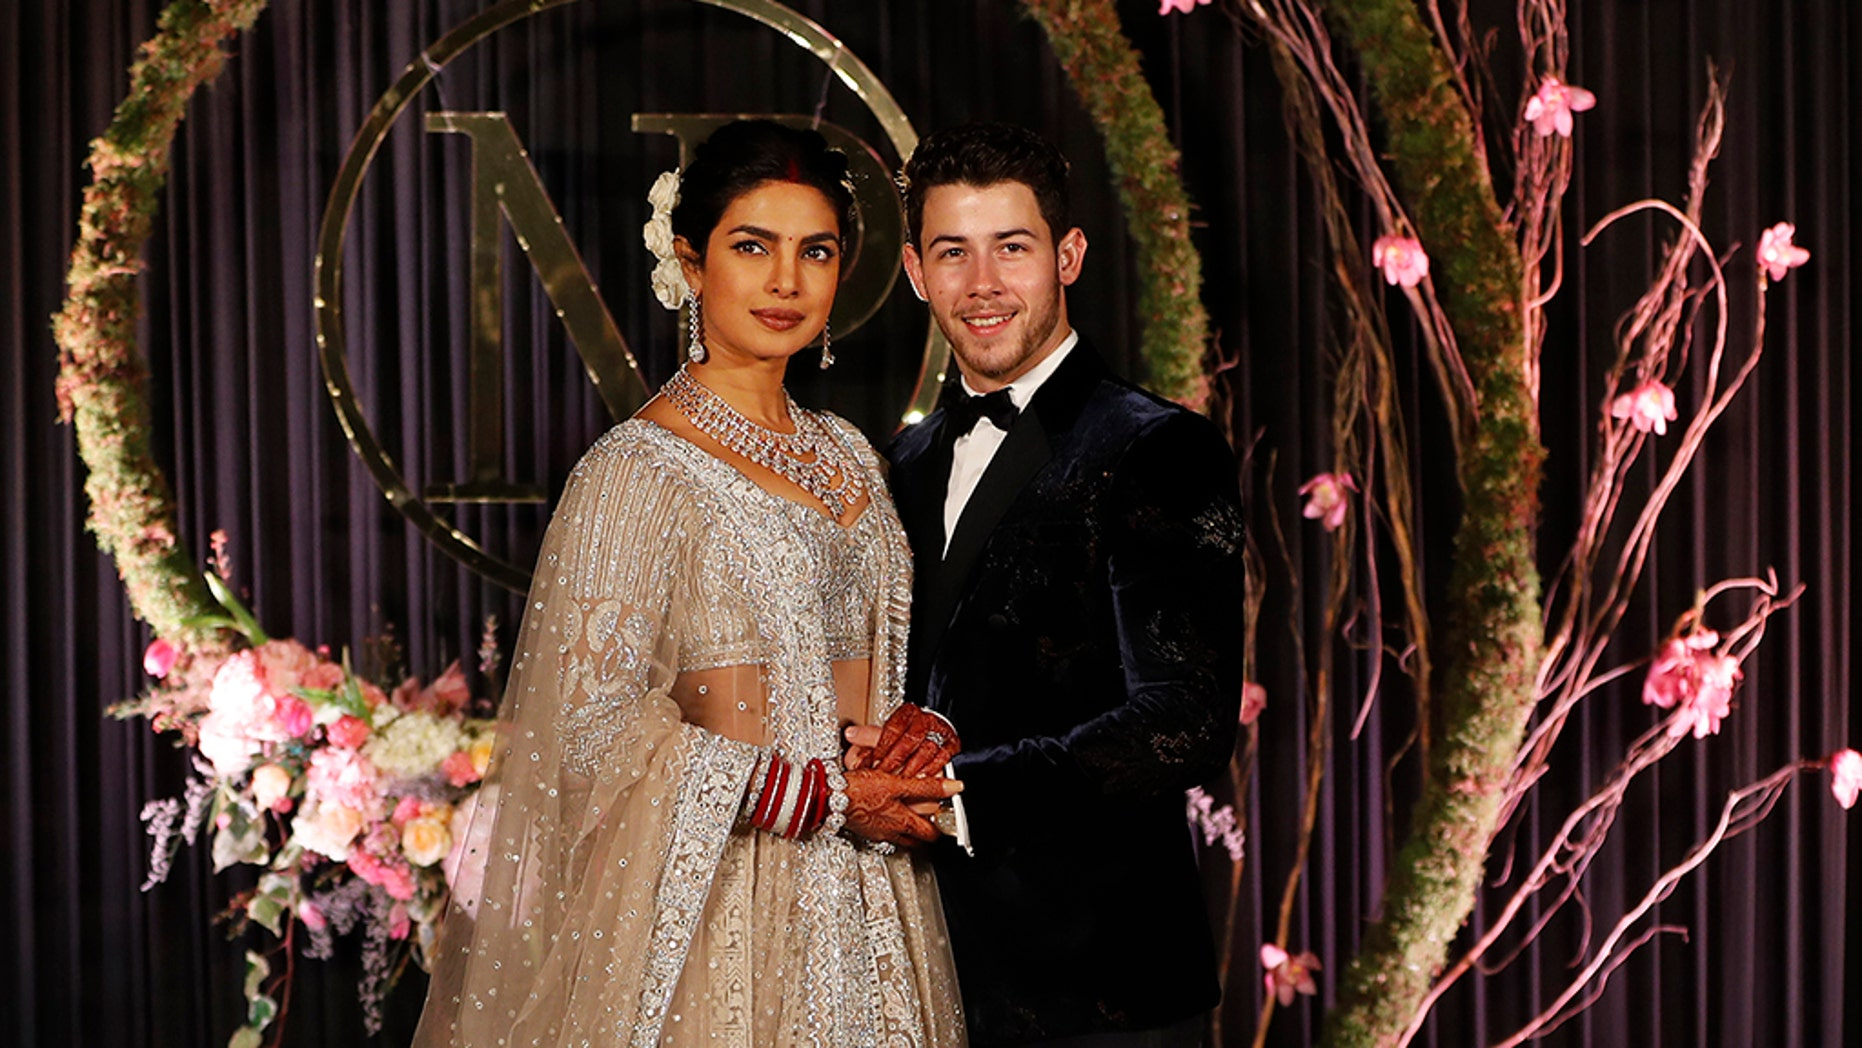 Priyanka Chopra, Nick Jonas celebrate wedding at New Delhi reception